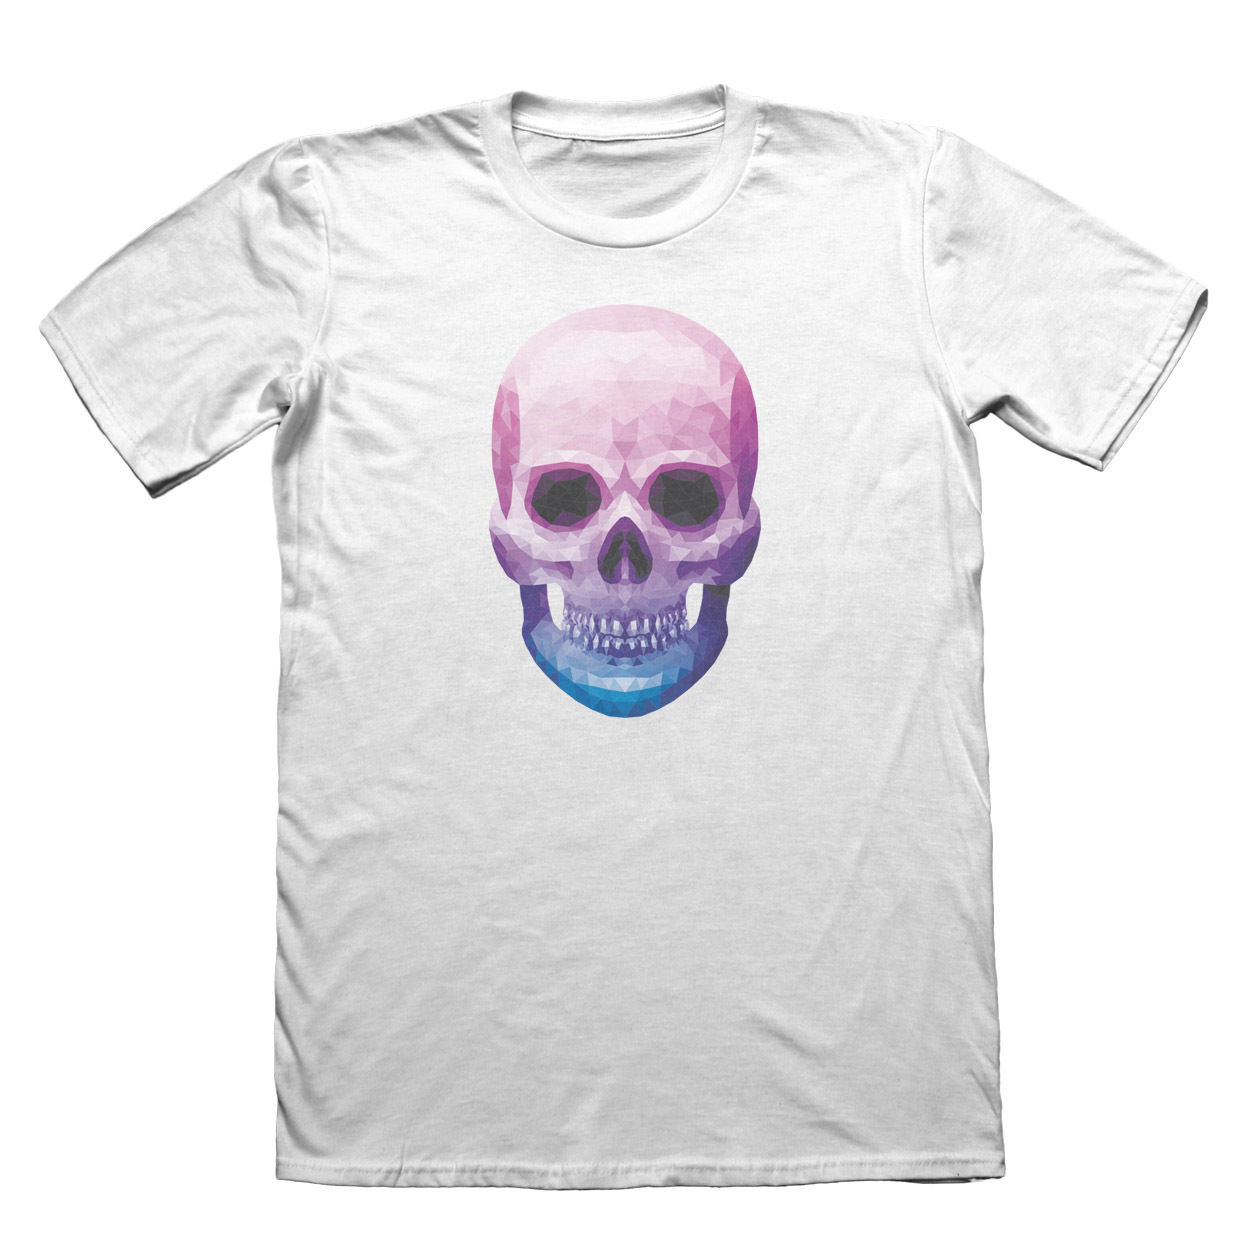 Geometric Skull T-Shirt - Fathers Day Christmas Gift #7504